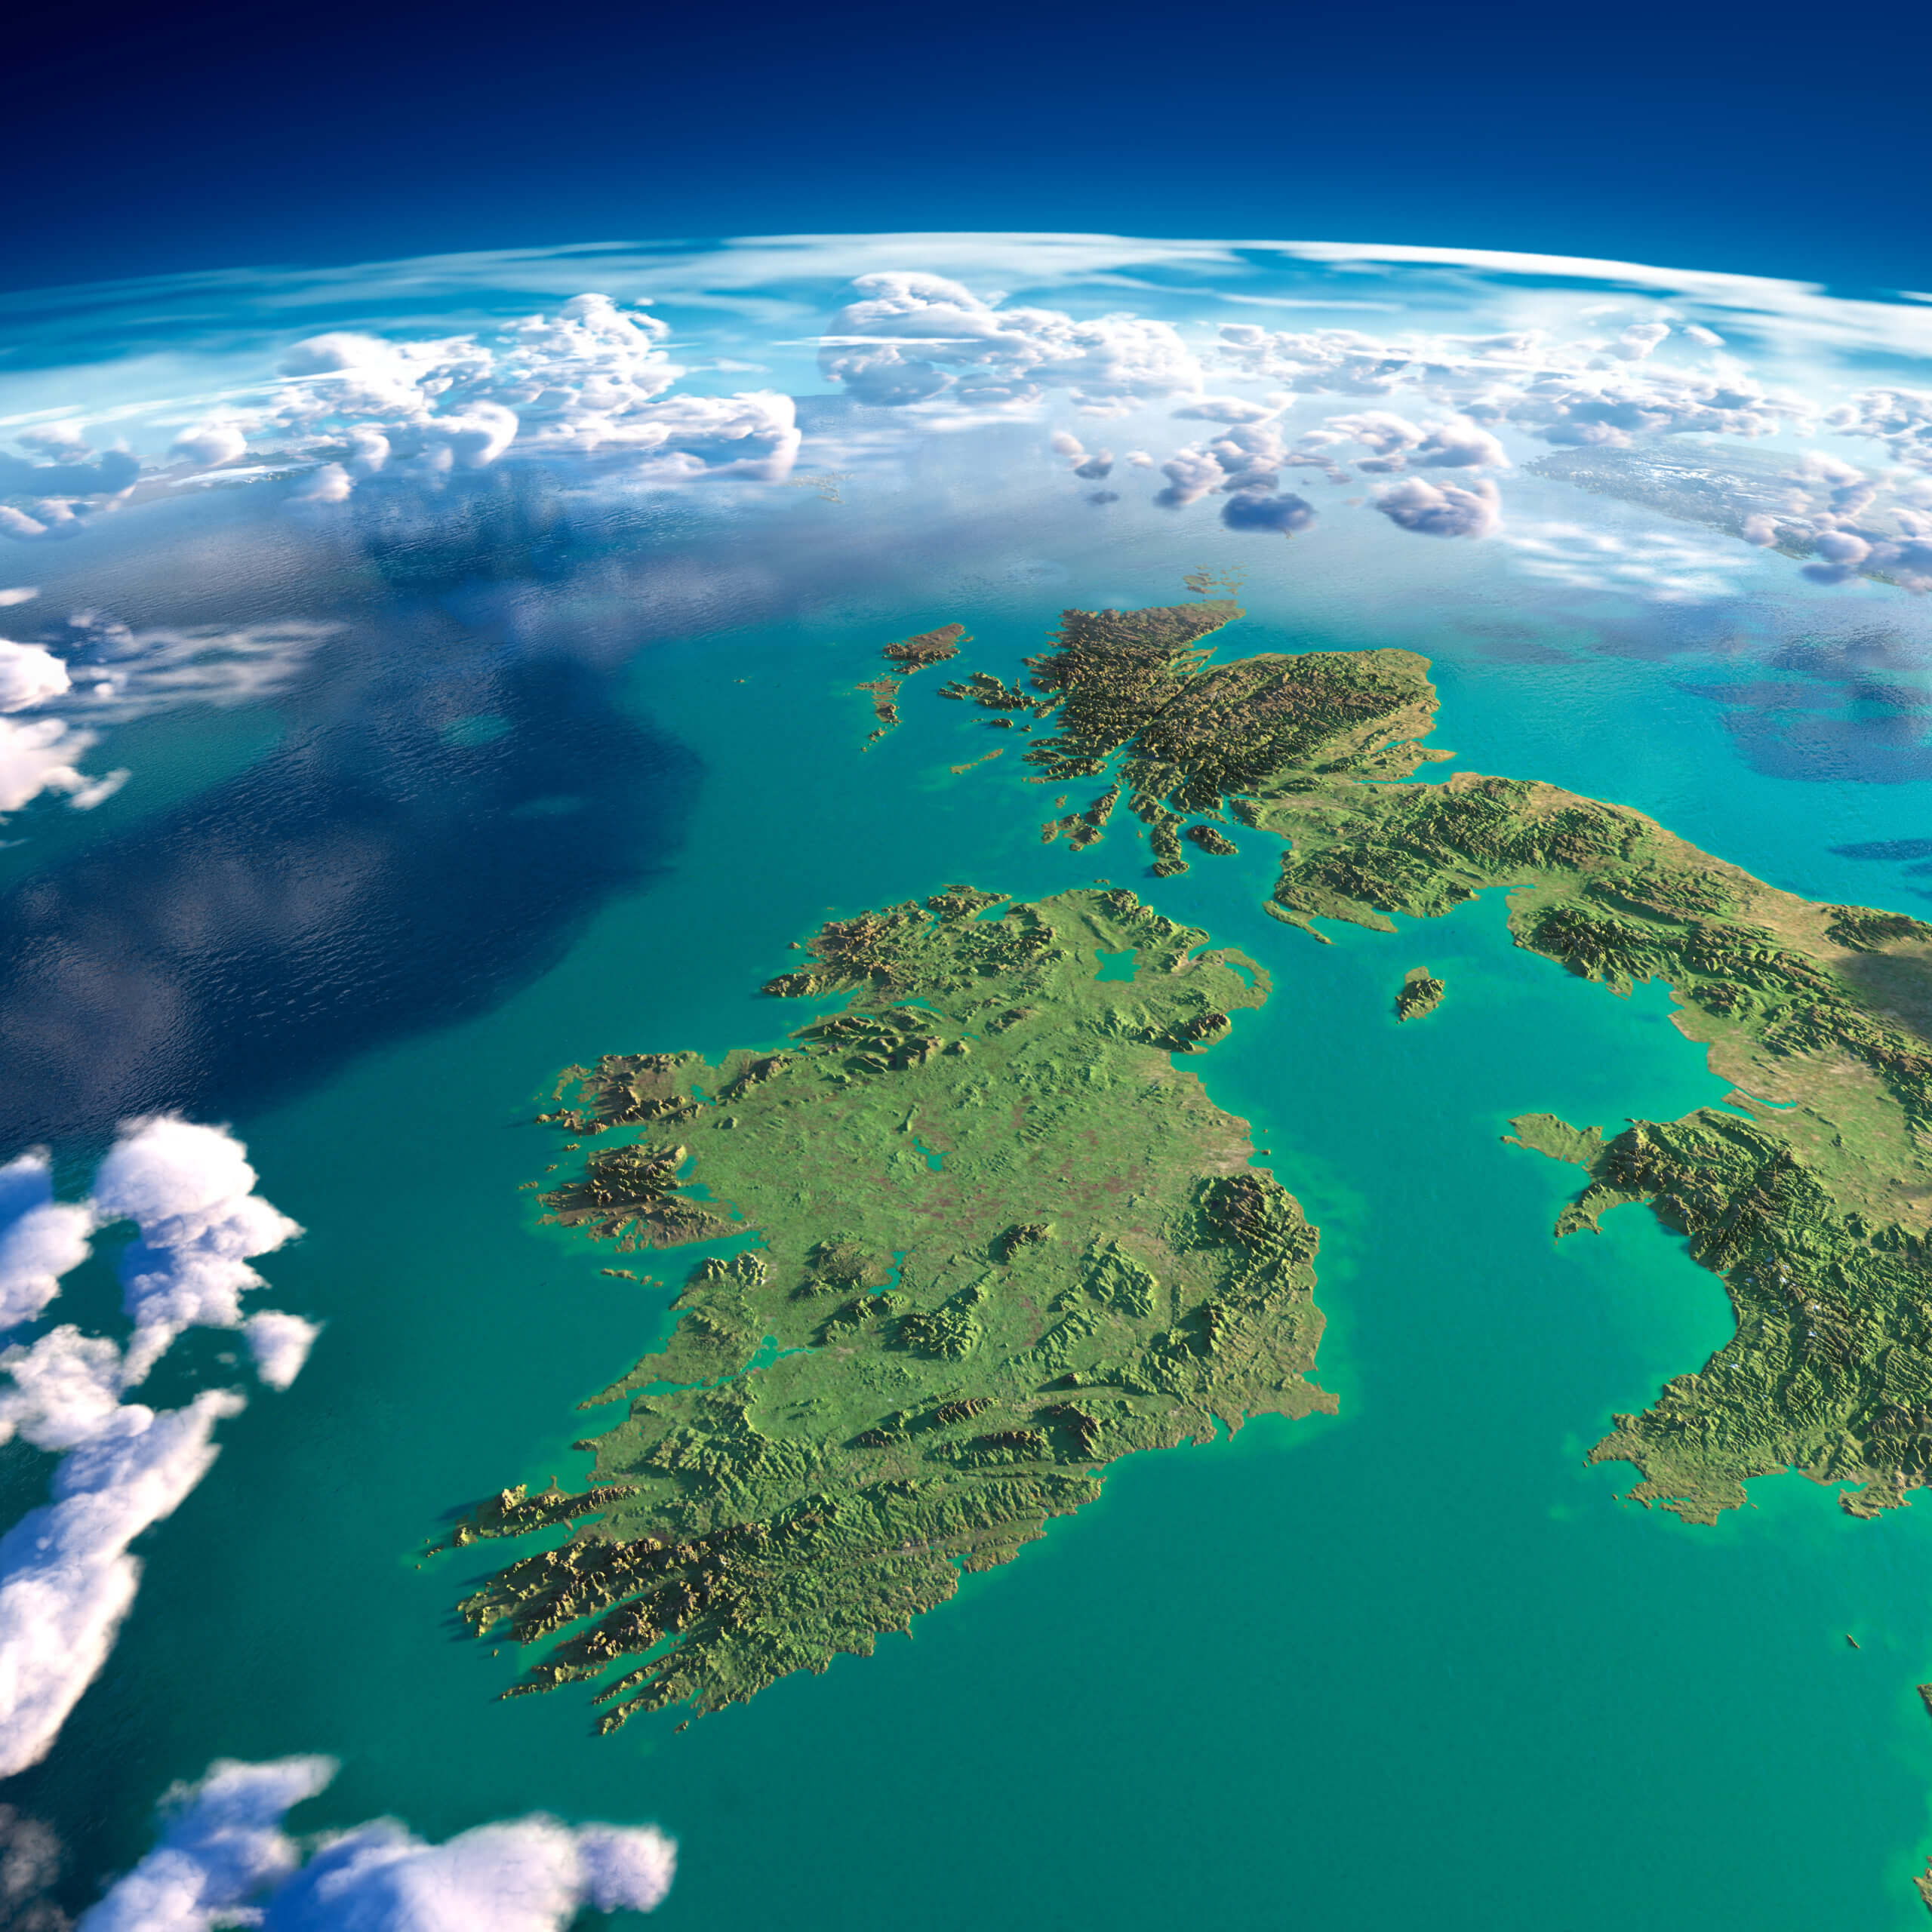 Image of Ireland from space